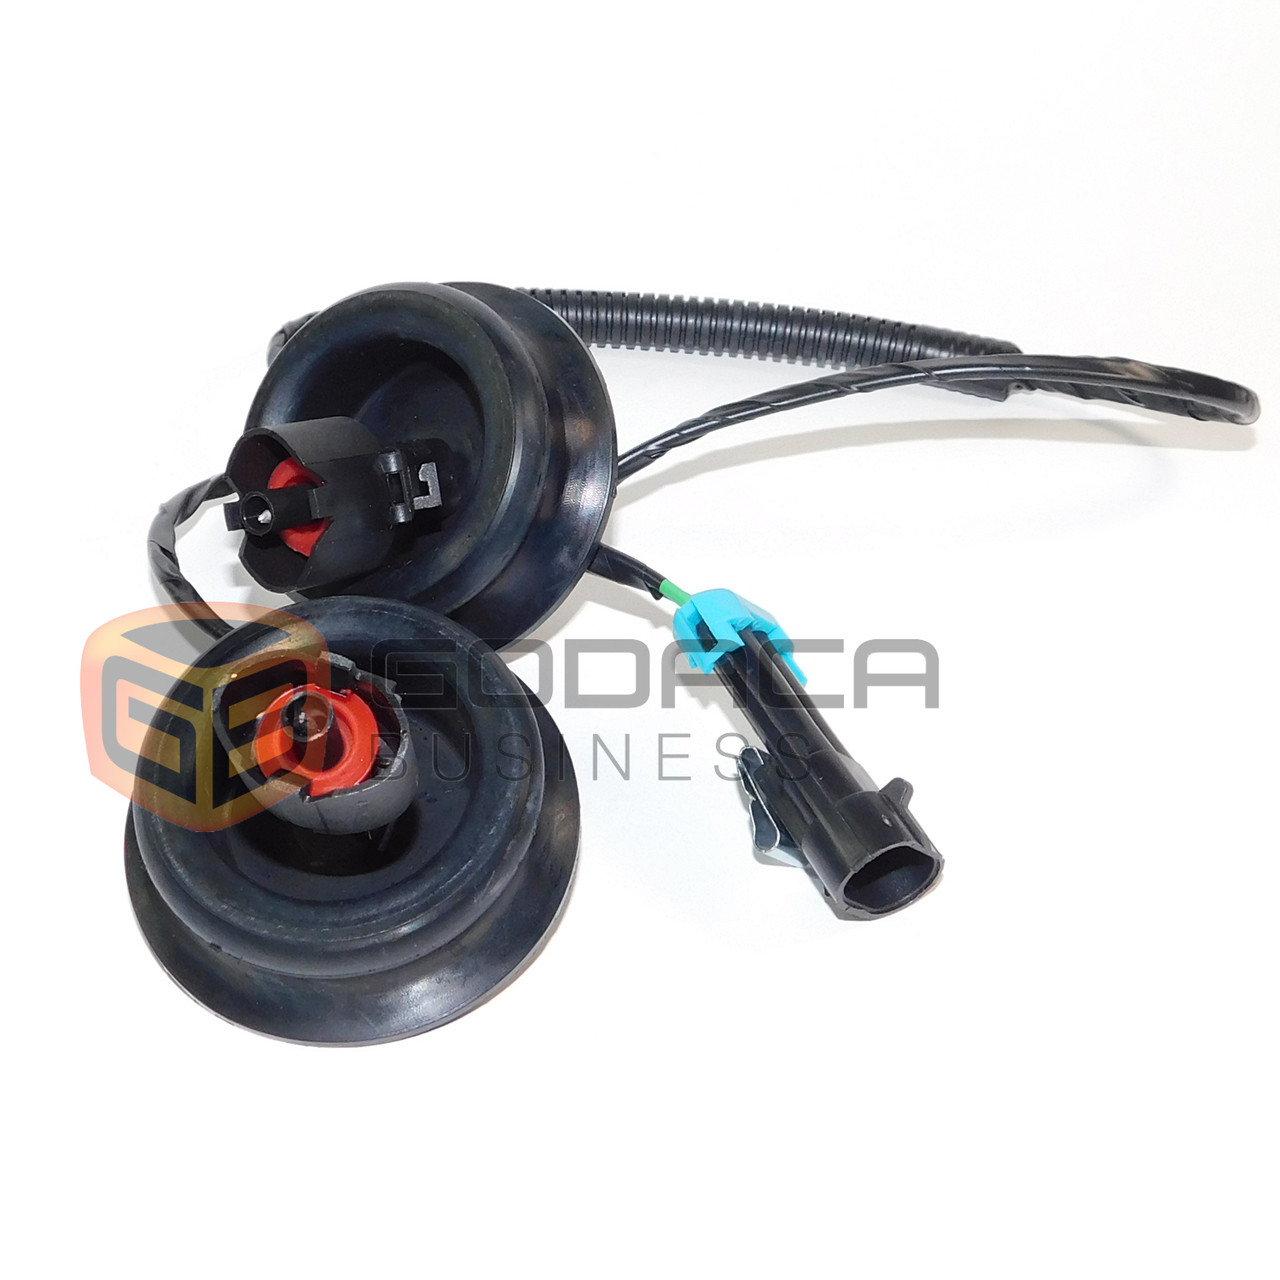 small resolution of 1x harness for engine knock sensor dual connectors grommets cadillac chevy gmc godaca llc